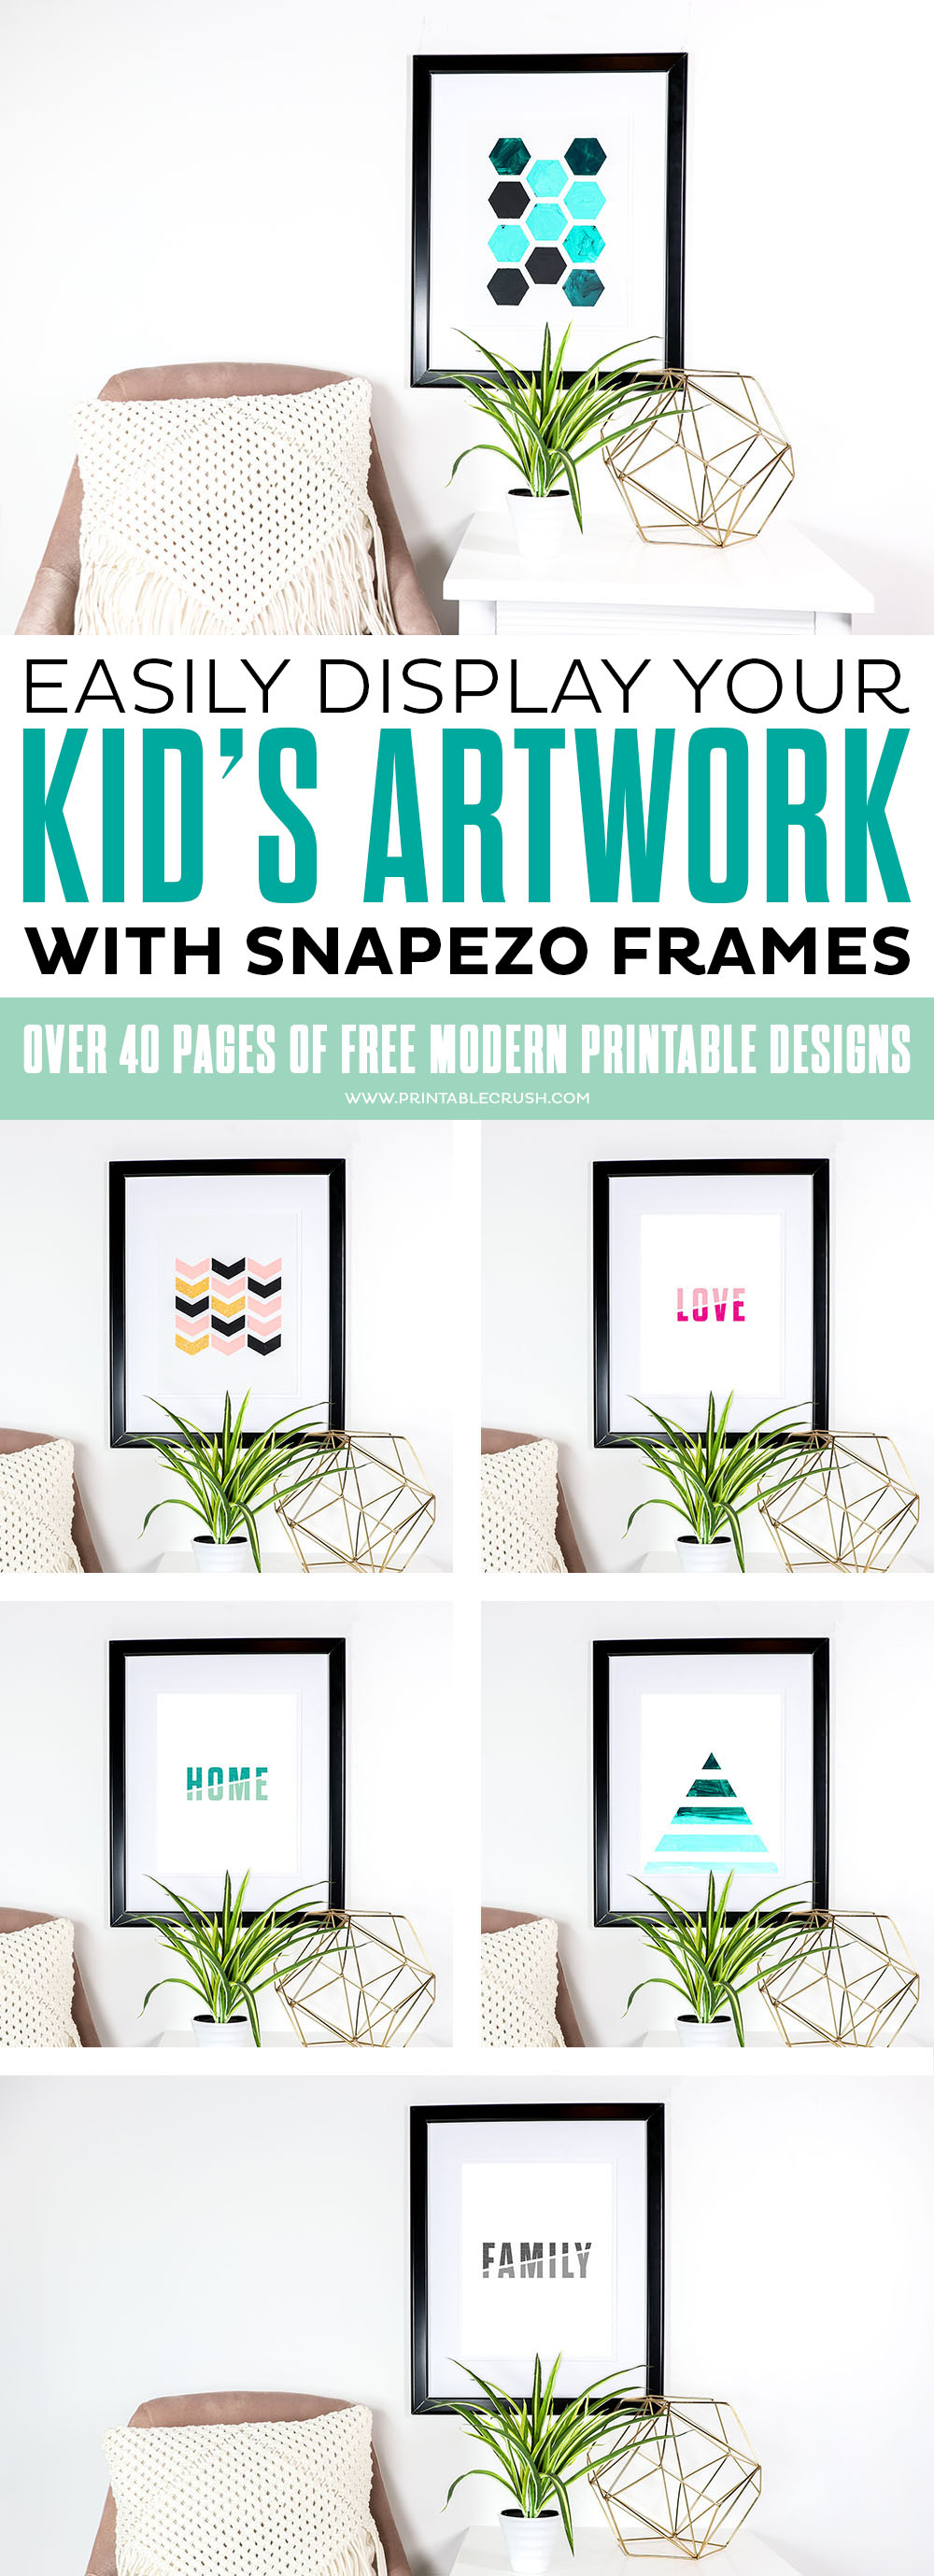 photo relating to Printable Artwork known as Employ the service of SnapeZo Frames toward Demonstrate Small children Art - Printable Crush